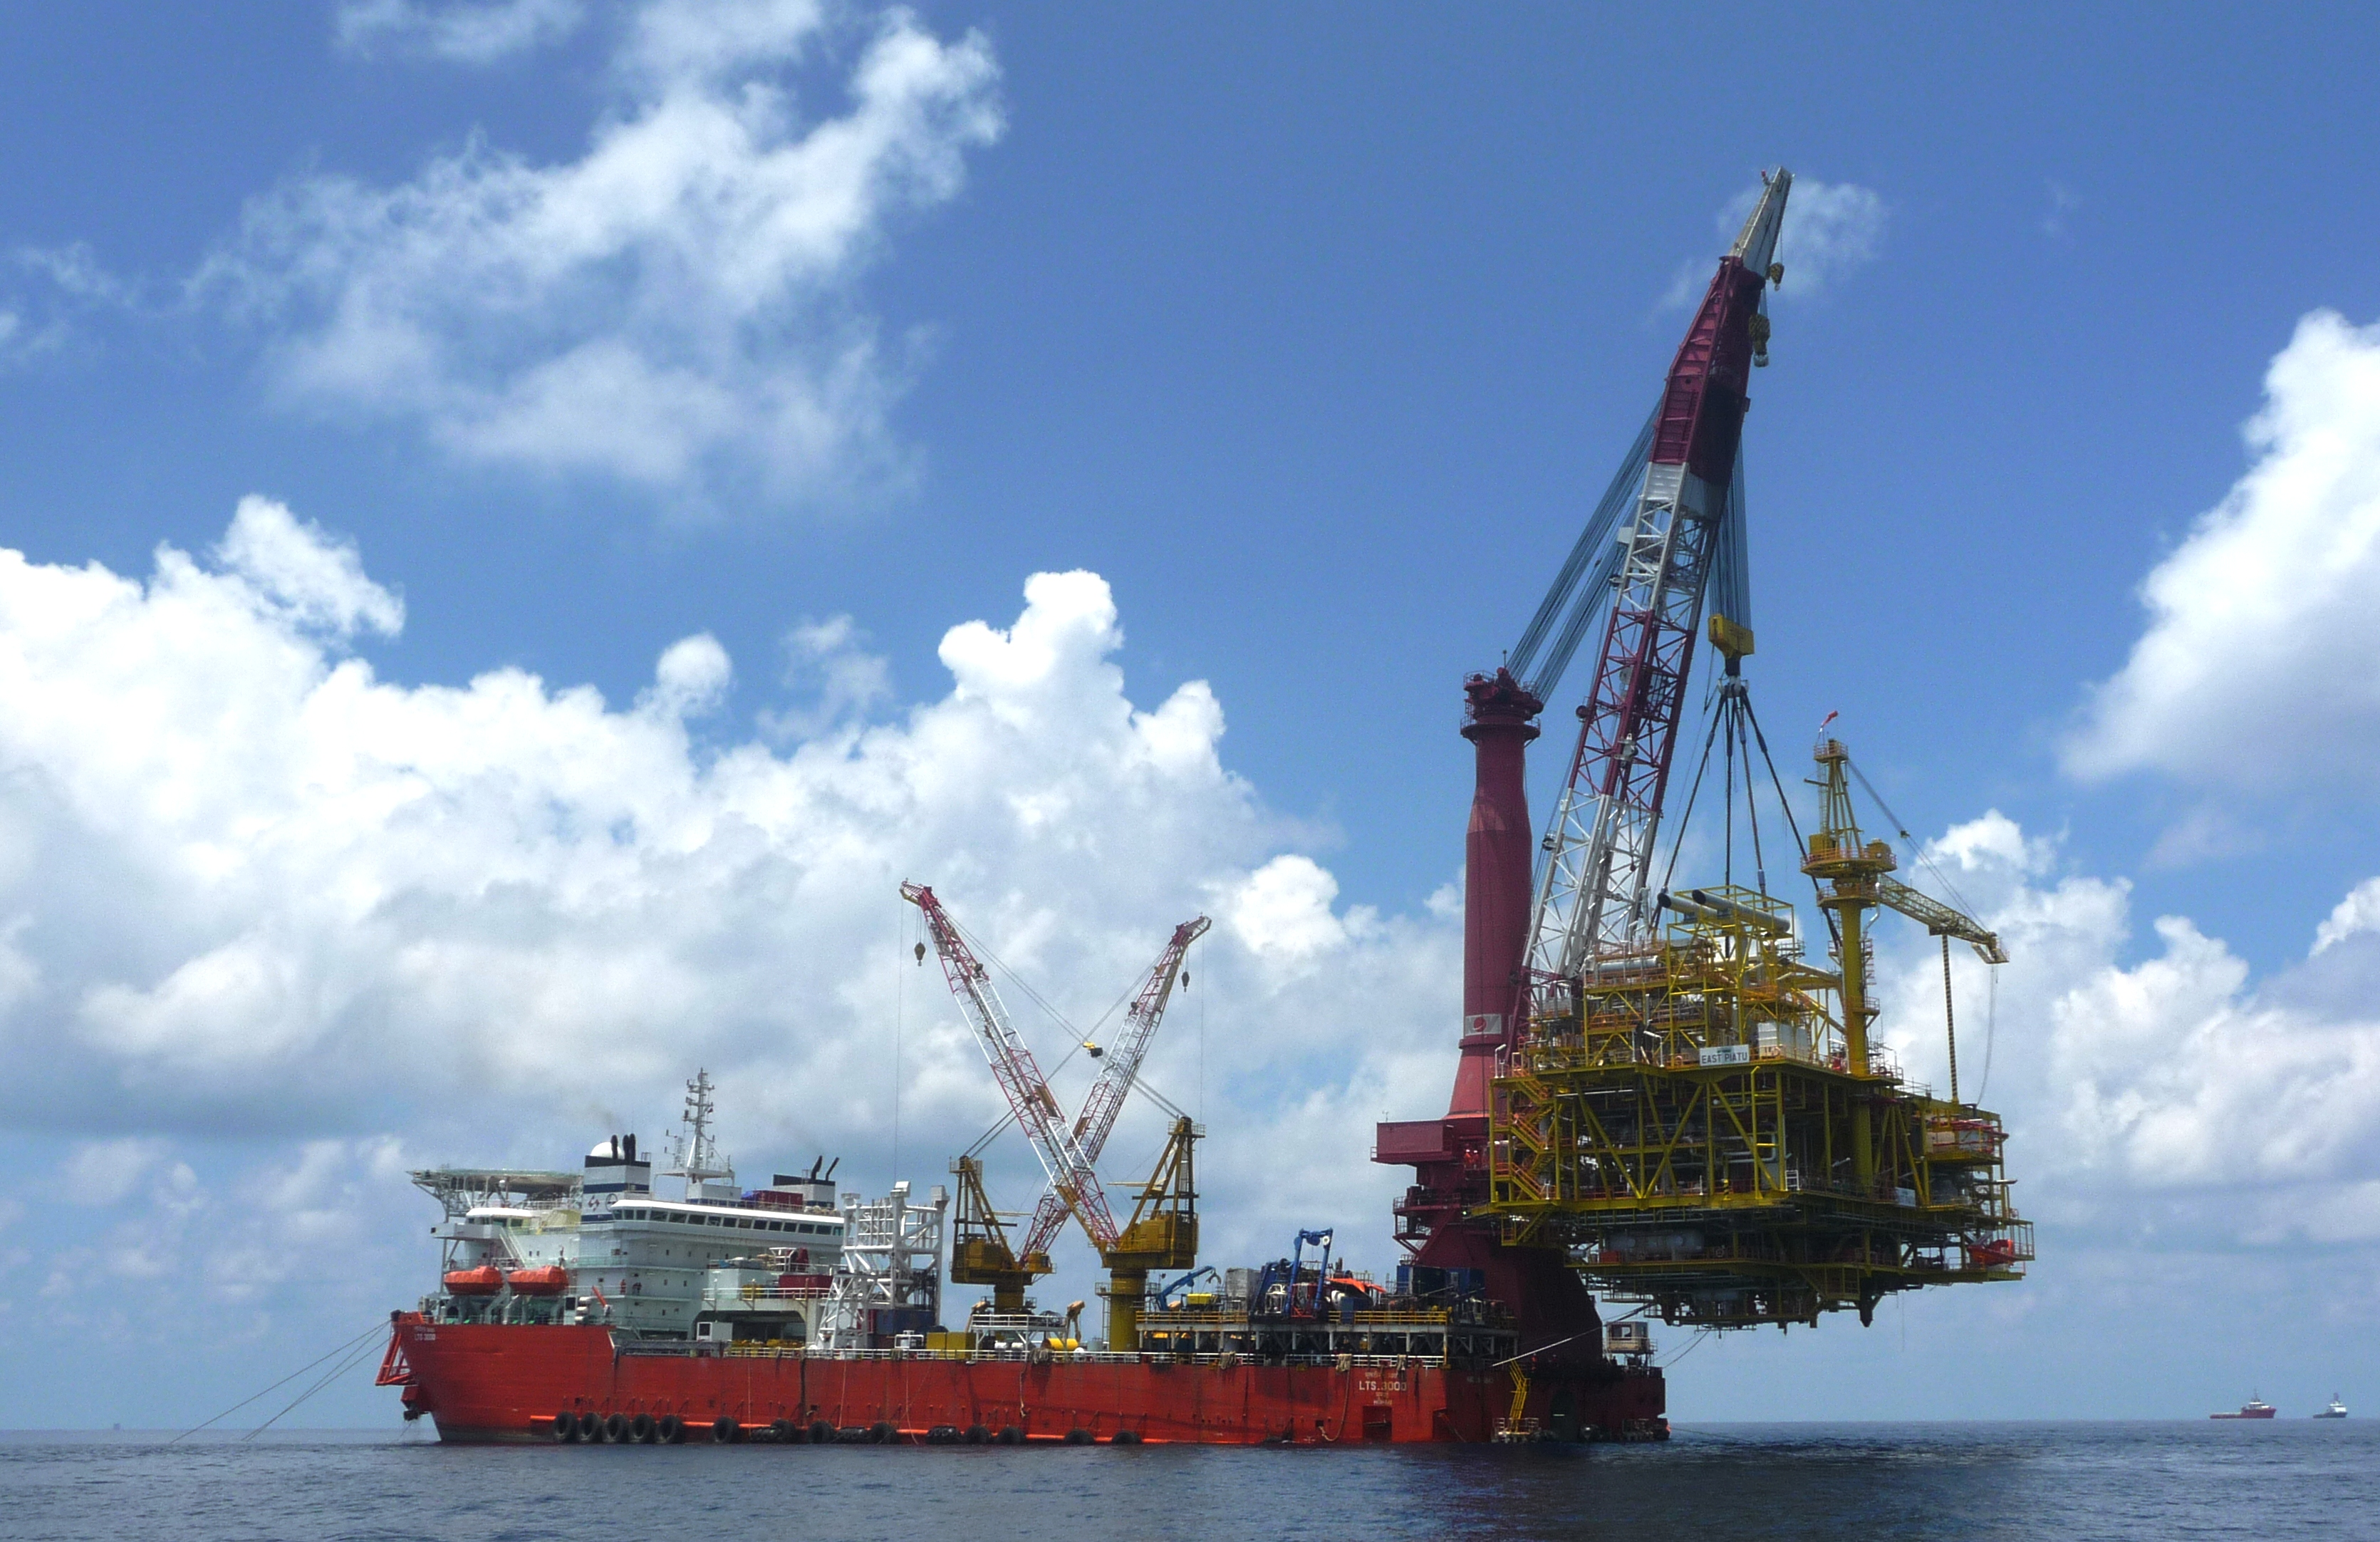 CIMB Research sees very tough conditions ahead for Sapura